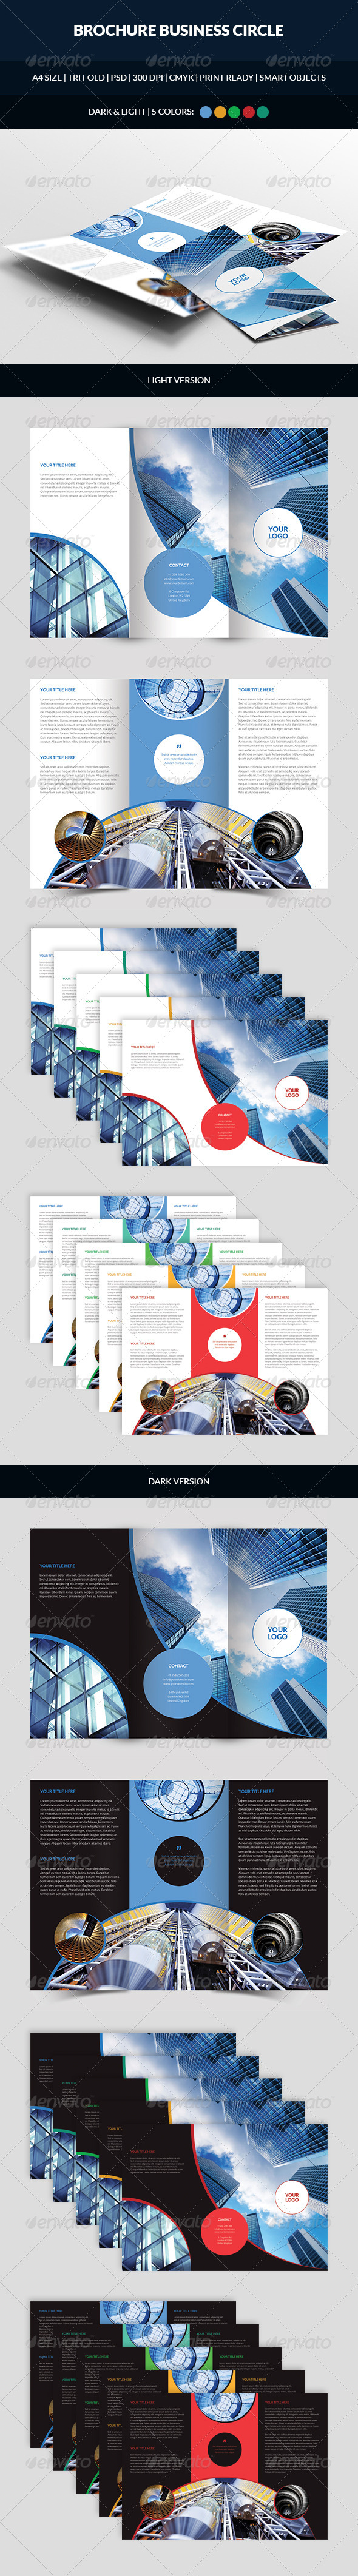 GraphicRiver Brochure Business Circle Tri Fold 7390669